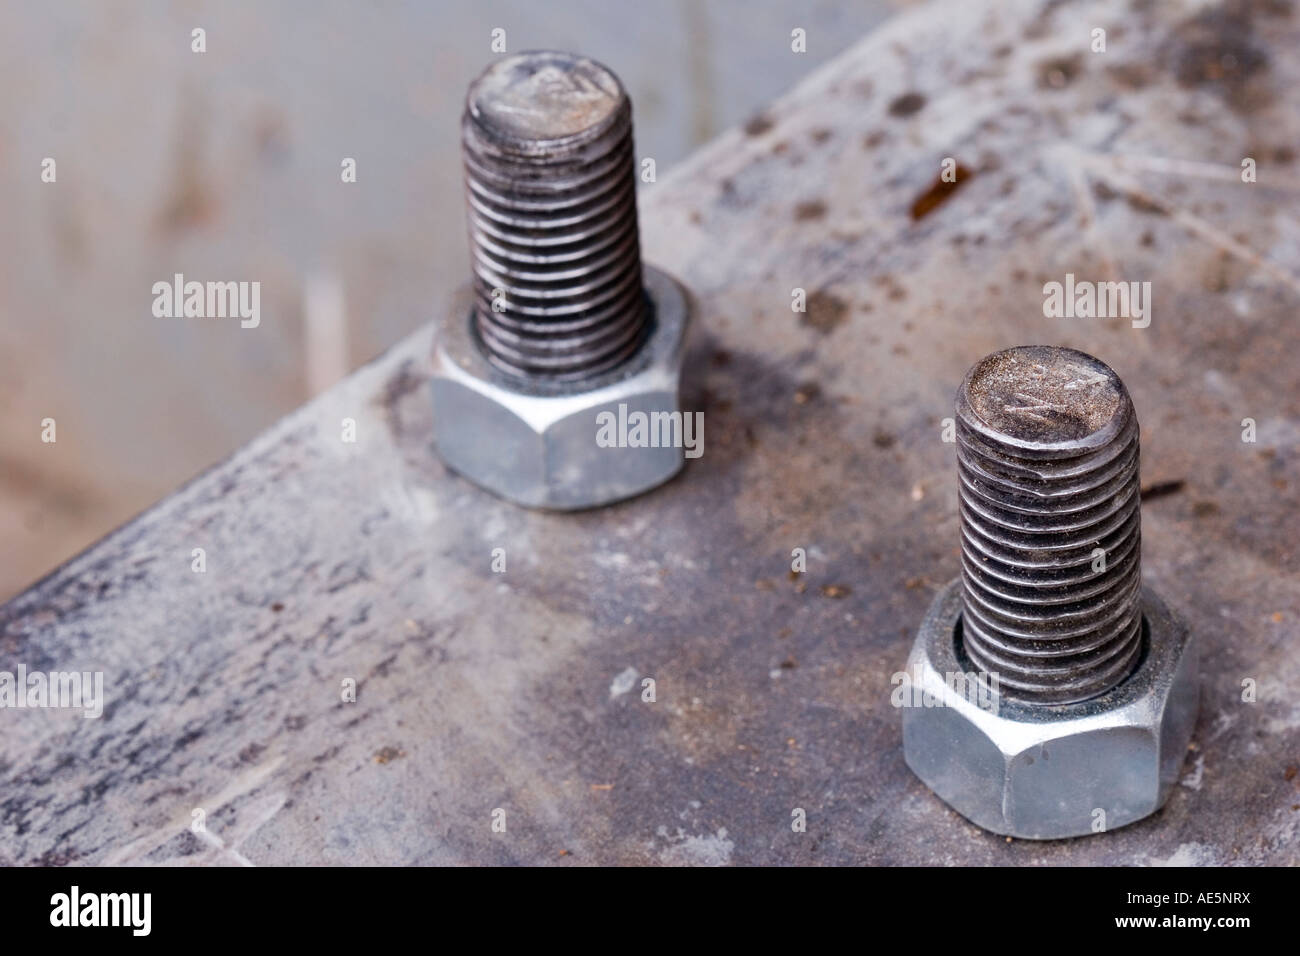 Two galvanized steel bolts secured to rusty metal plate with nuts Stock Photo